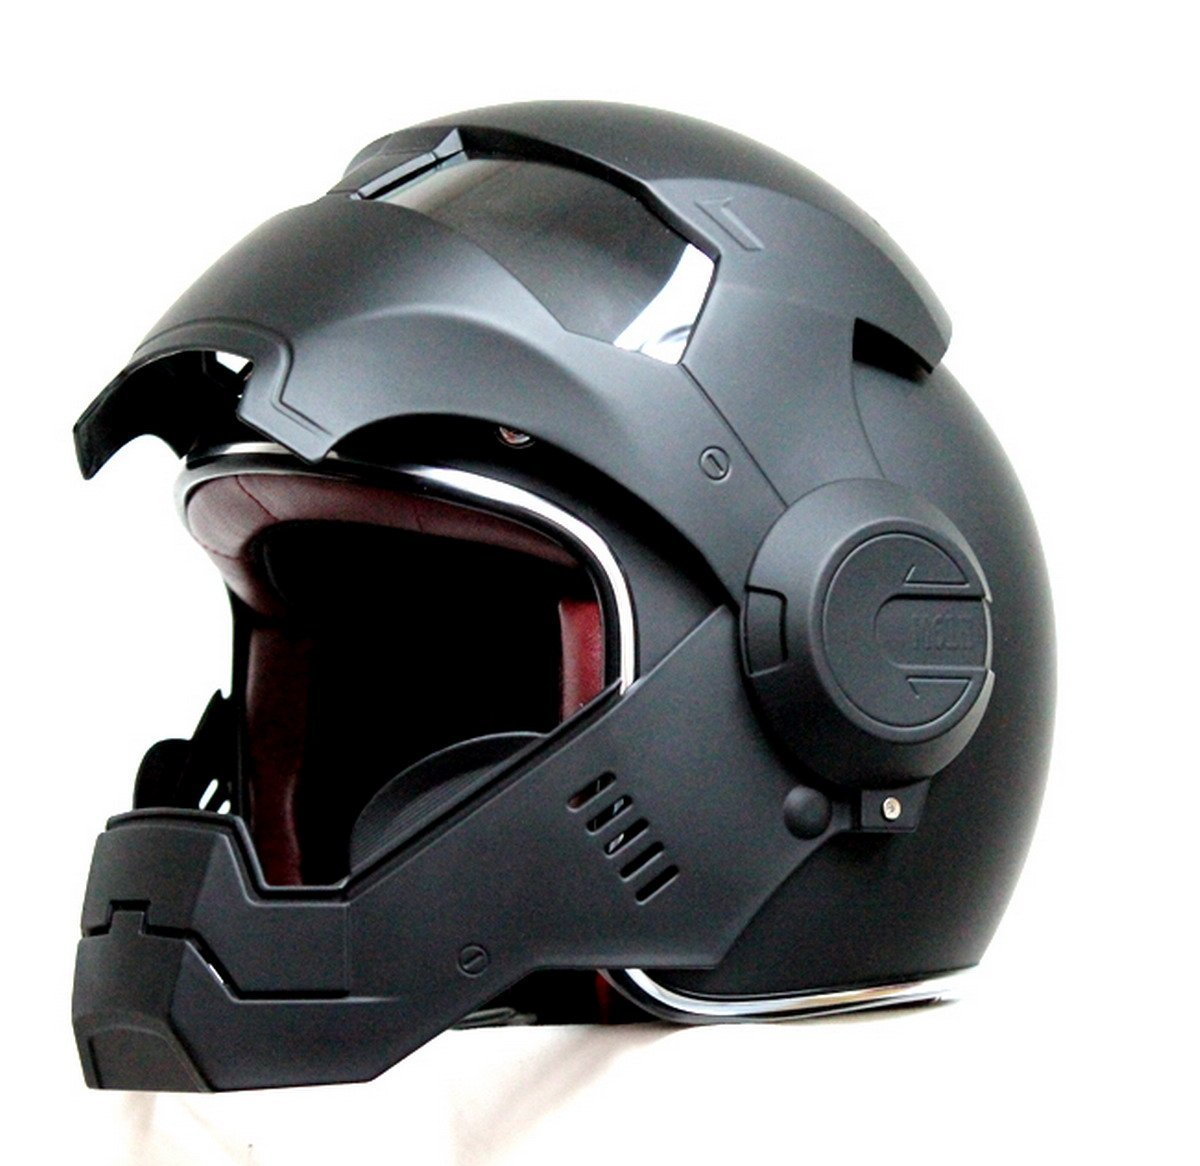 Best Bluetooth Motorcycle Helmets (Updated for 2018)